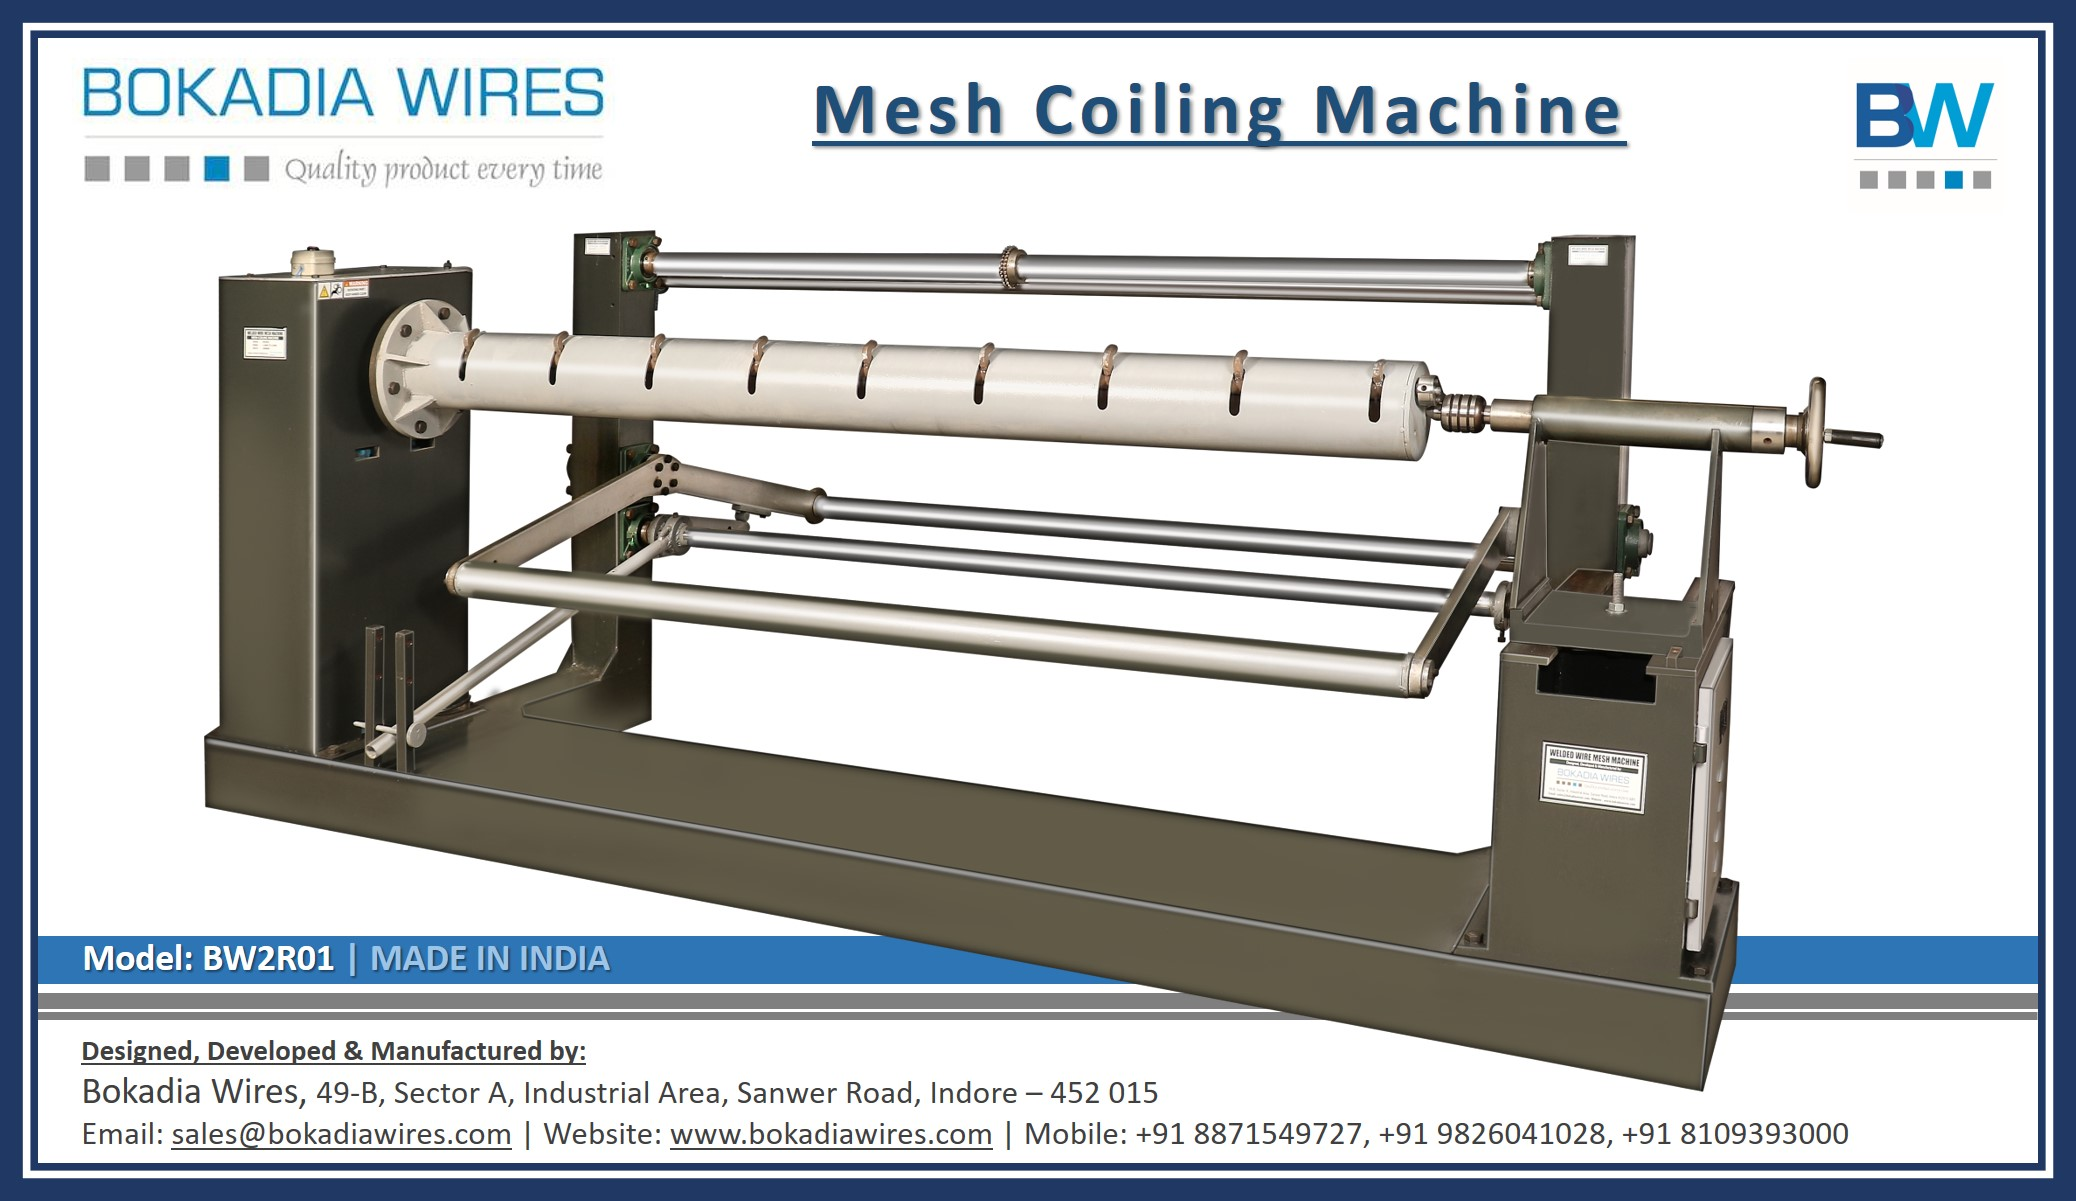 Mesh Coiling Machine (Model: BW2R01)